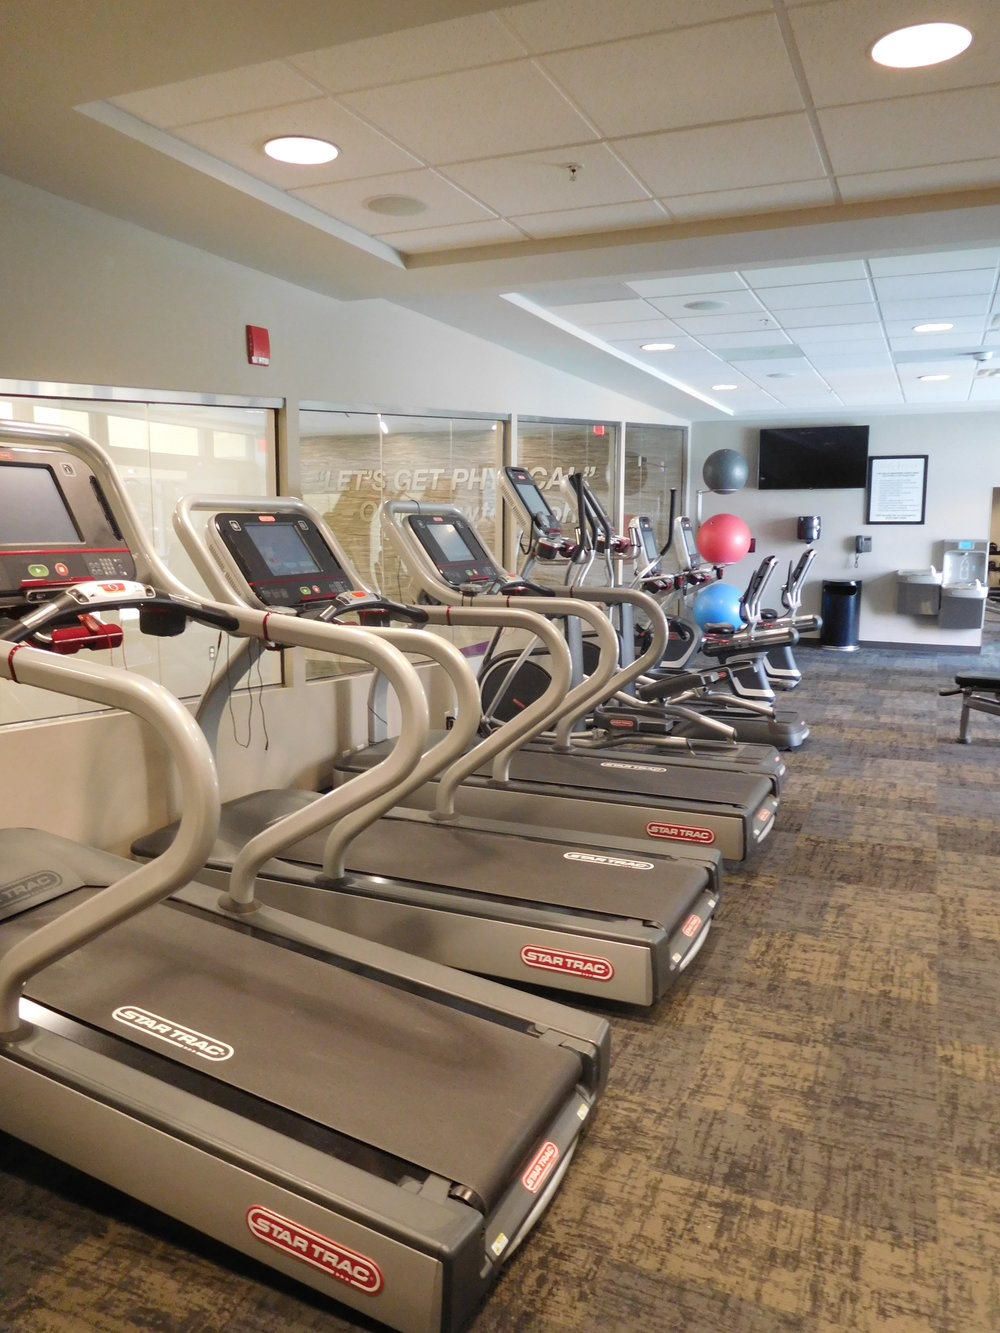 Hard Rock Hotel & Casino Fitness Center